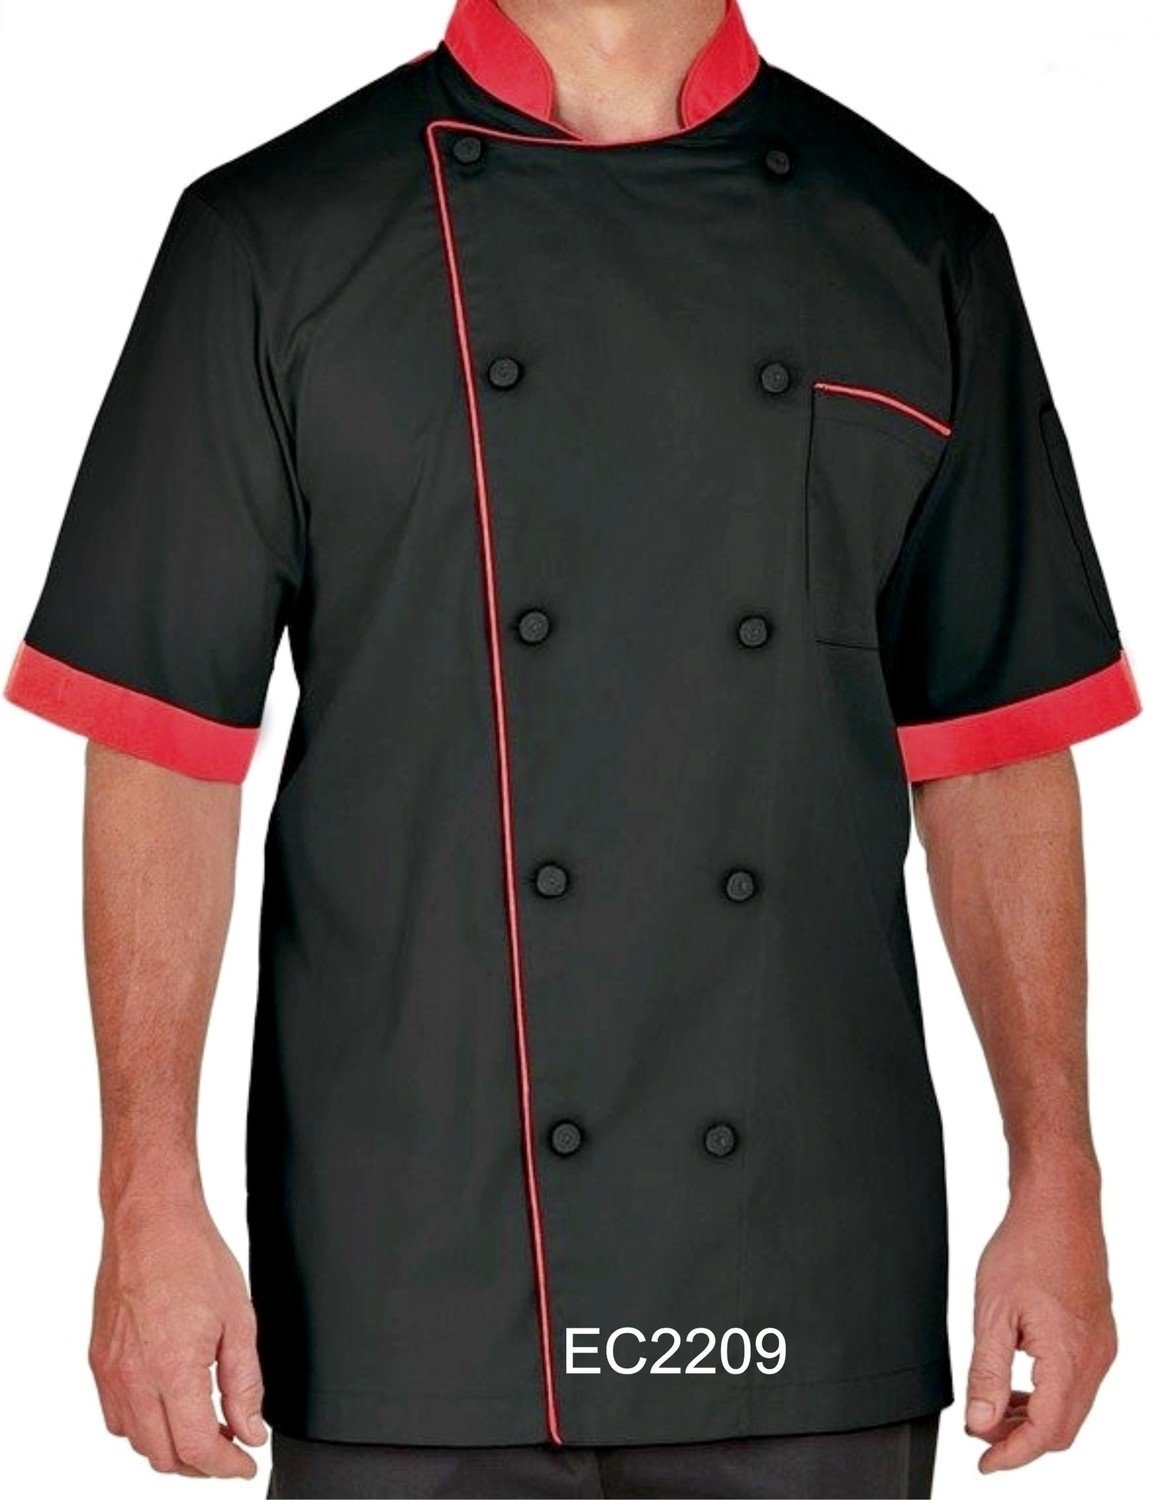 EC2209 EXECUTIVE CHEF COAT